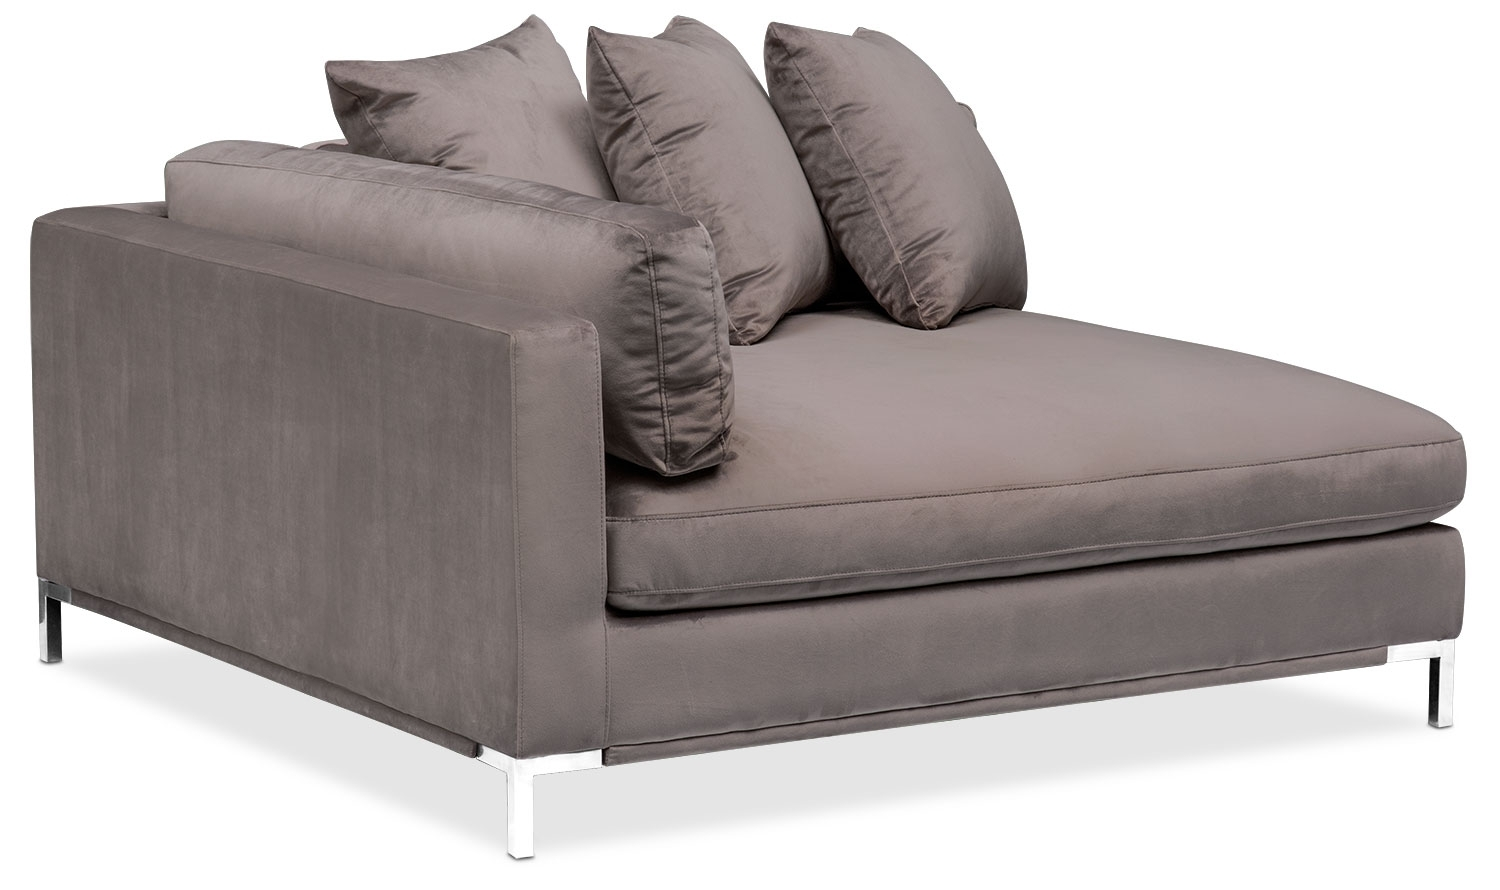 Moda 3 Piece Sectional With Left Facing Chaise – Oyster | American With Nico Grey Sectionals With Left Facing Storage Chaise (View 20 of 25)